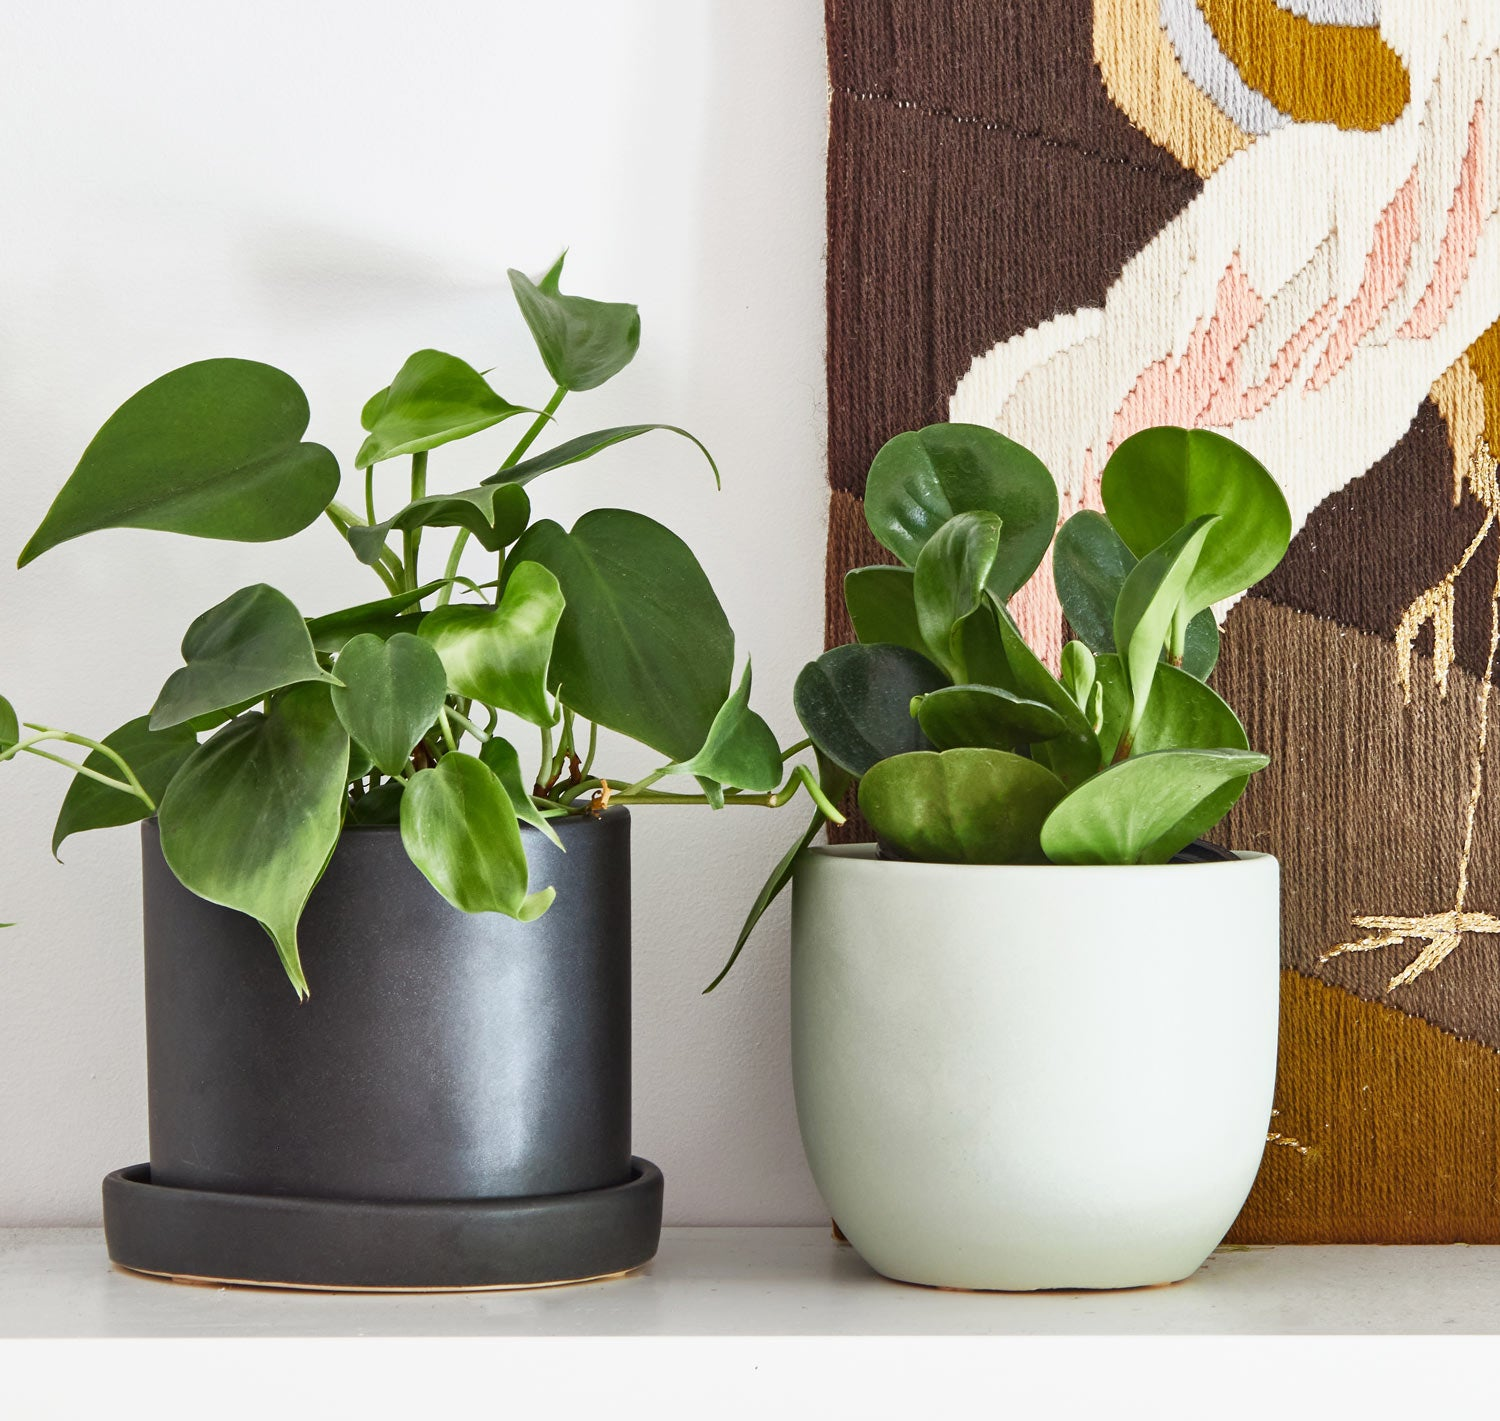 Philo peperomia on shelf 32b72384 eaff 403c a208 a901a2cb338e